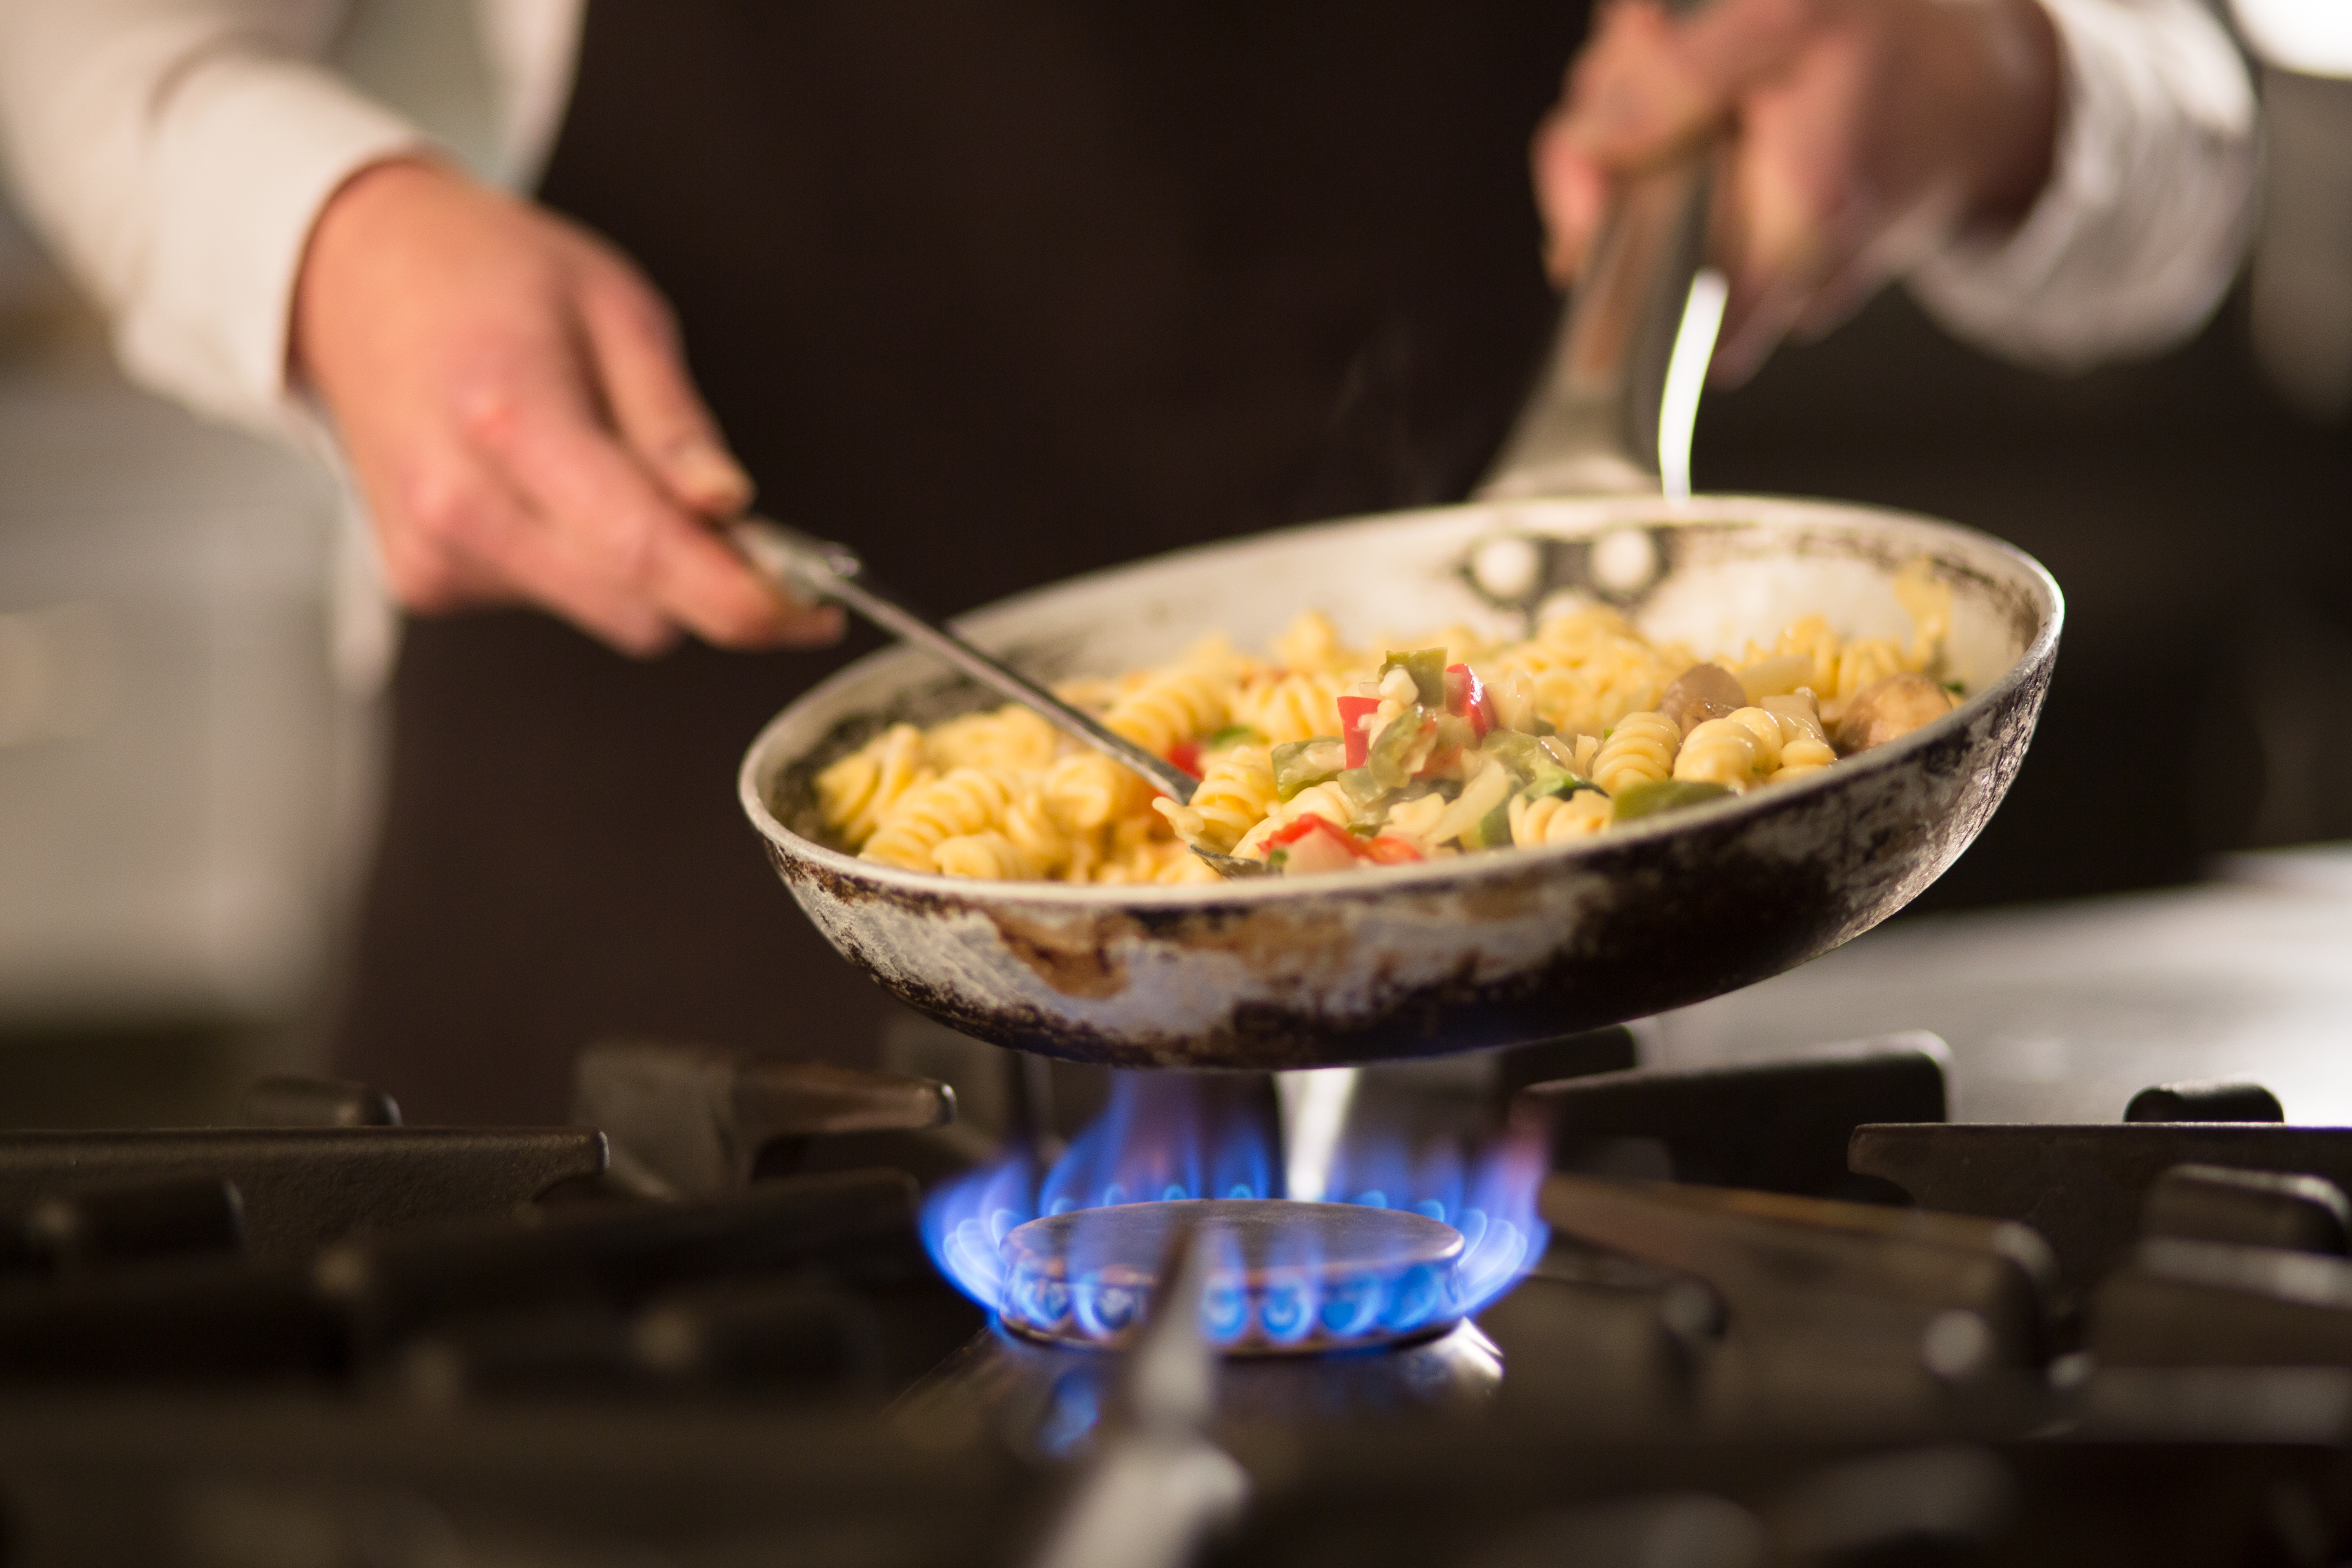 Pasta dish with vegetables on stove